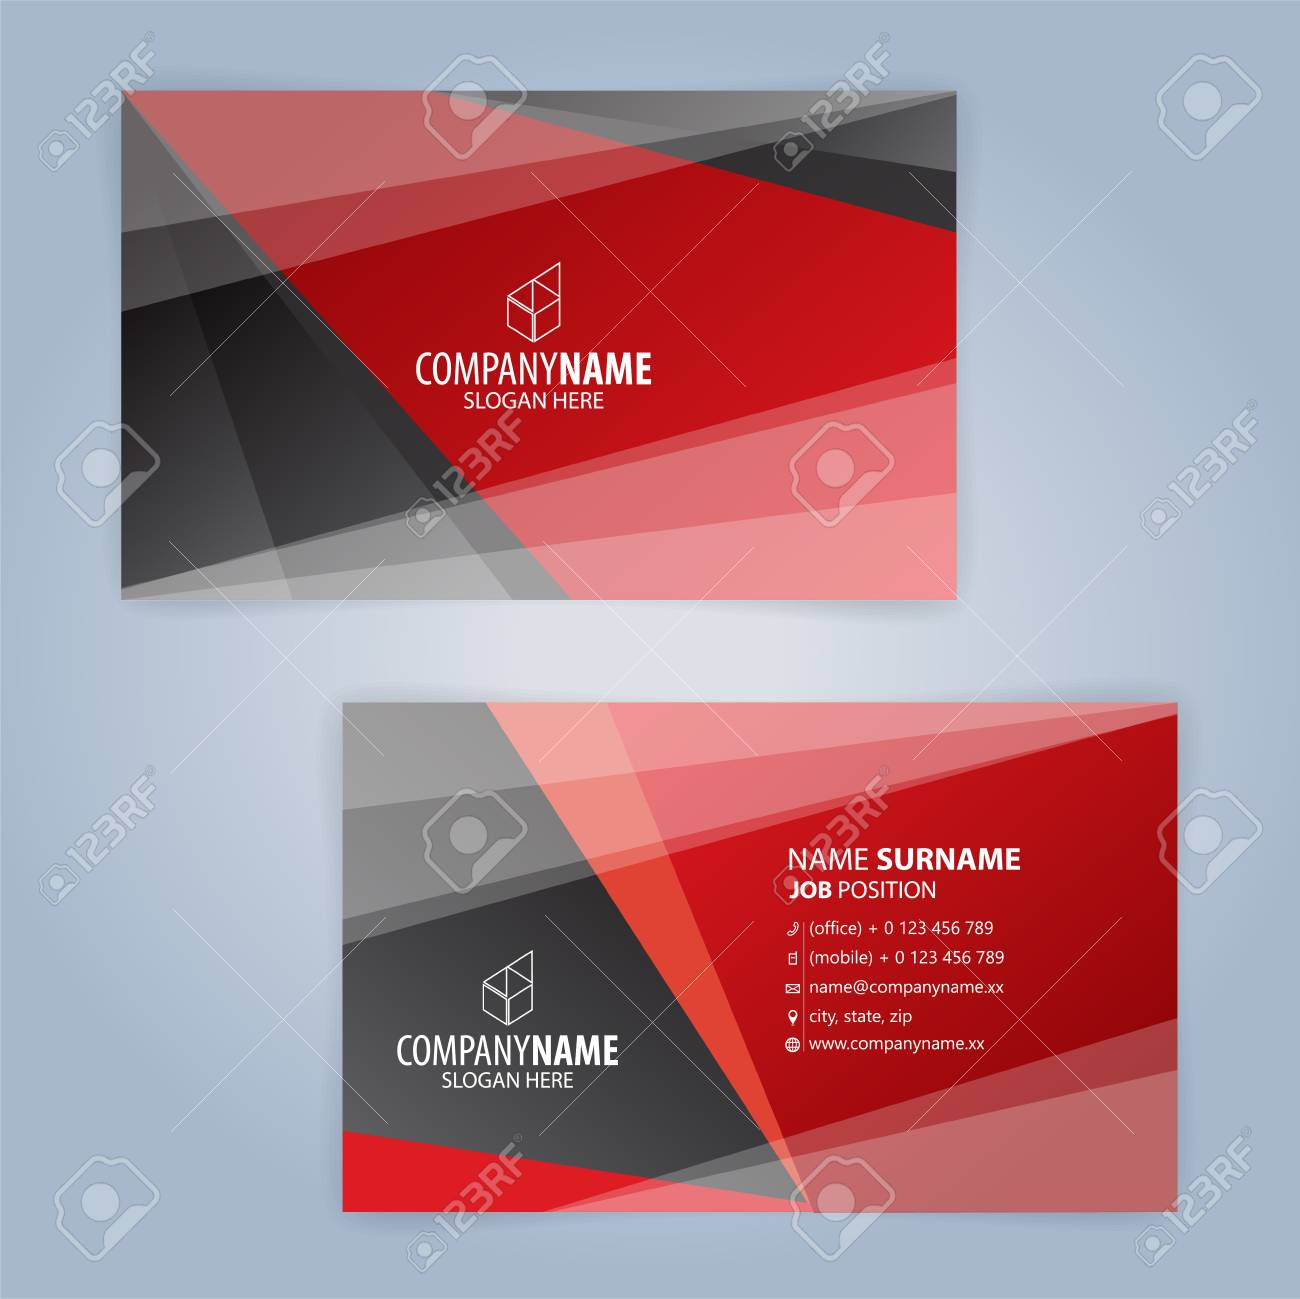 Red And Black Modern Business Card Template Illustration Vector 10